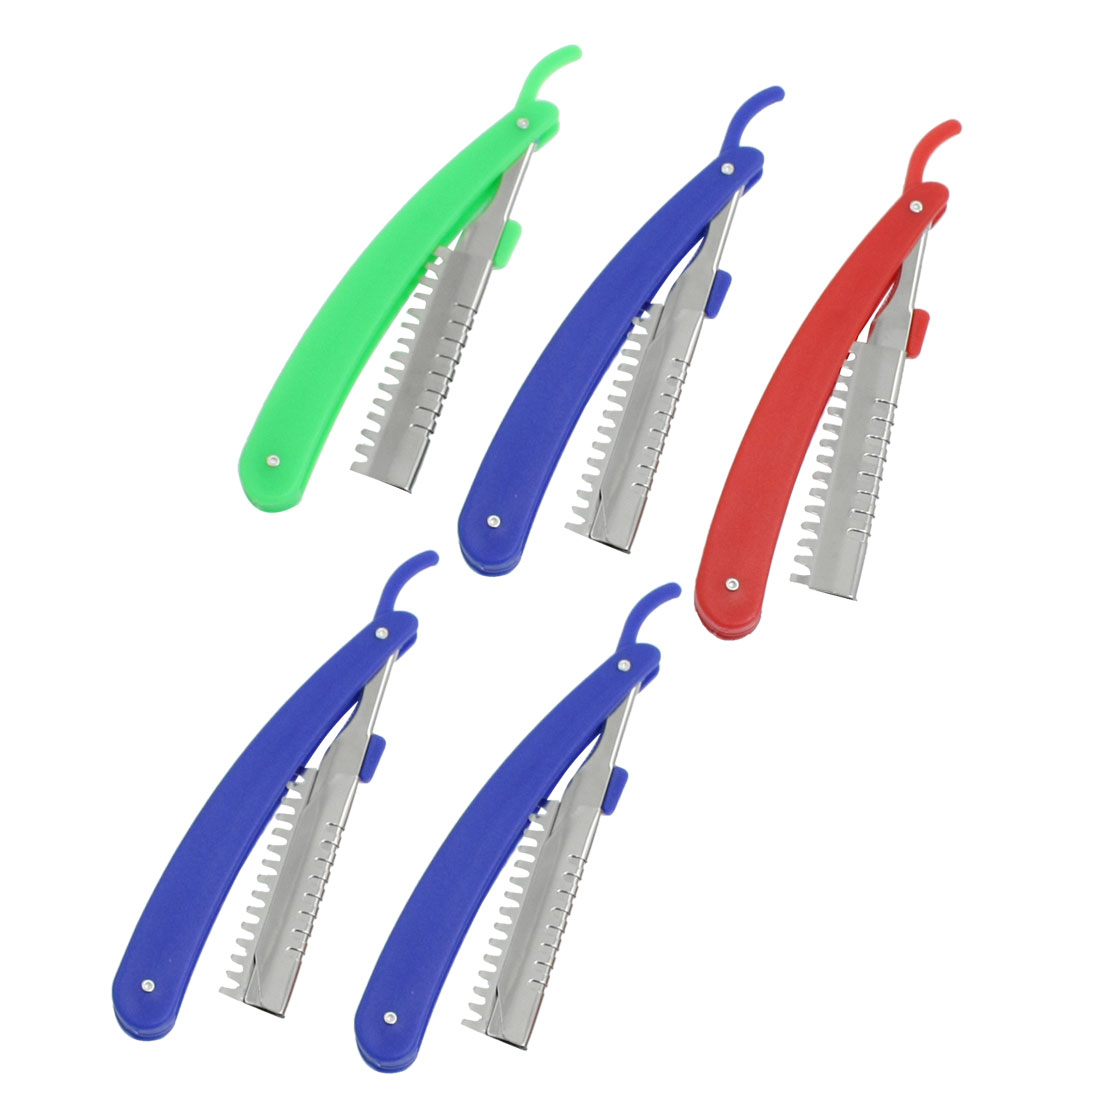 Unique Bargains Unique Bargains 5 Pcs Red Green Handle Hair Hairstyle Comb Razor Cutter Holder